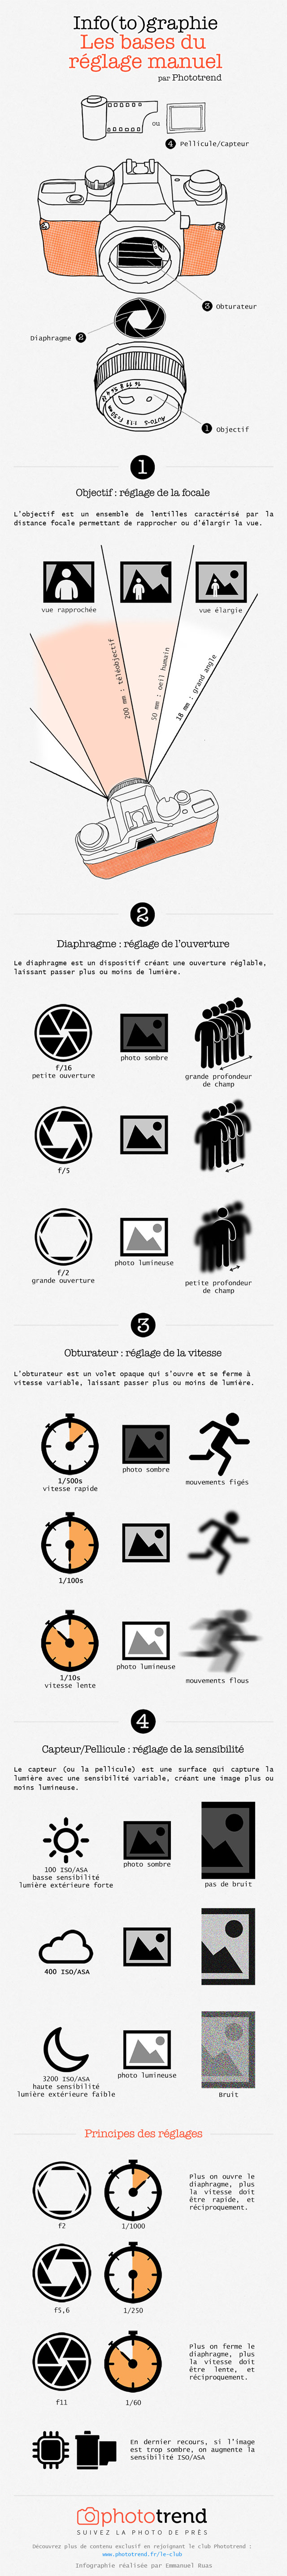 info(to)graphie-phototrend-manuel